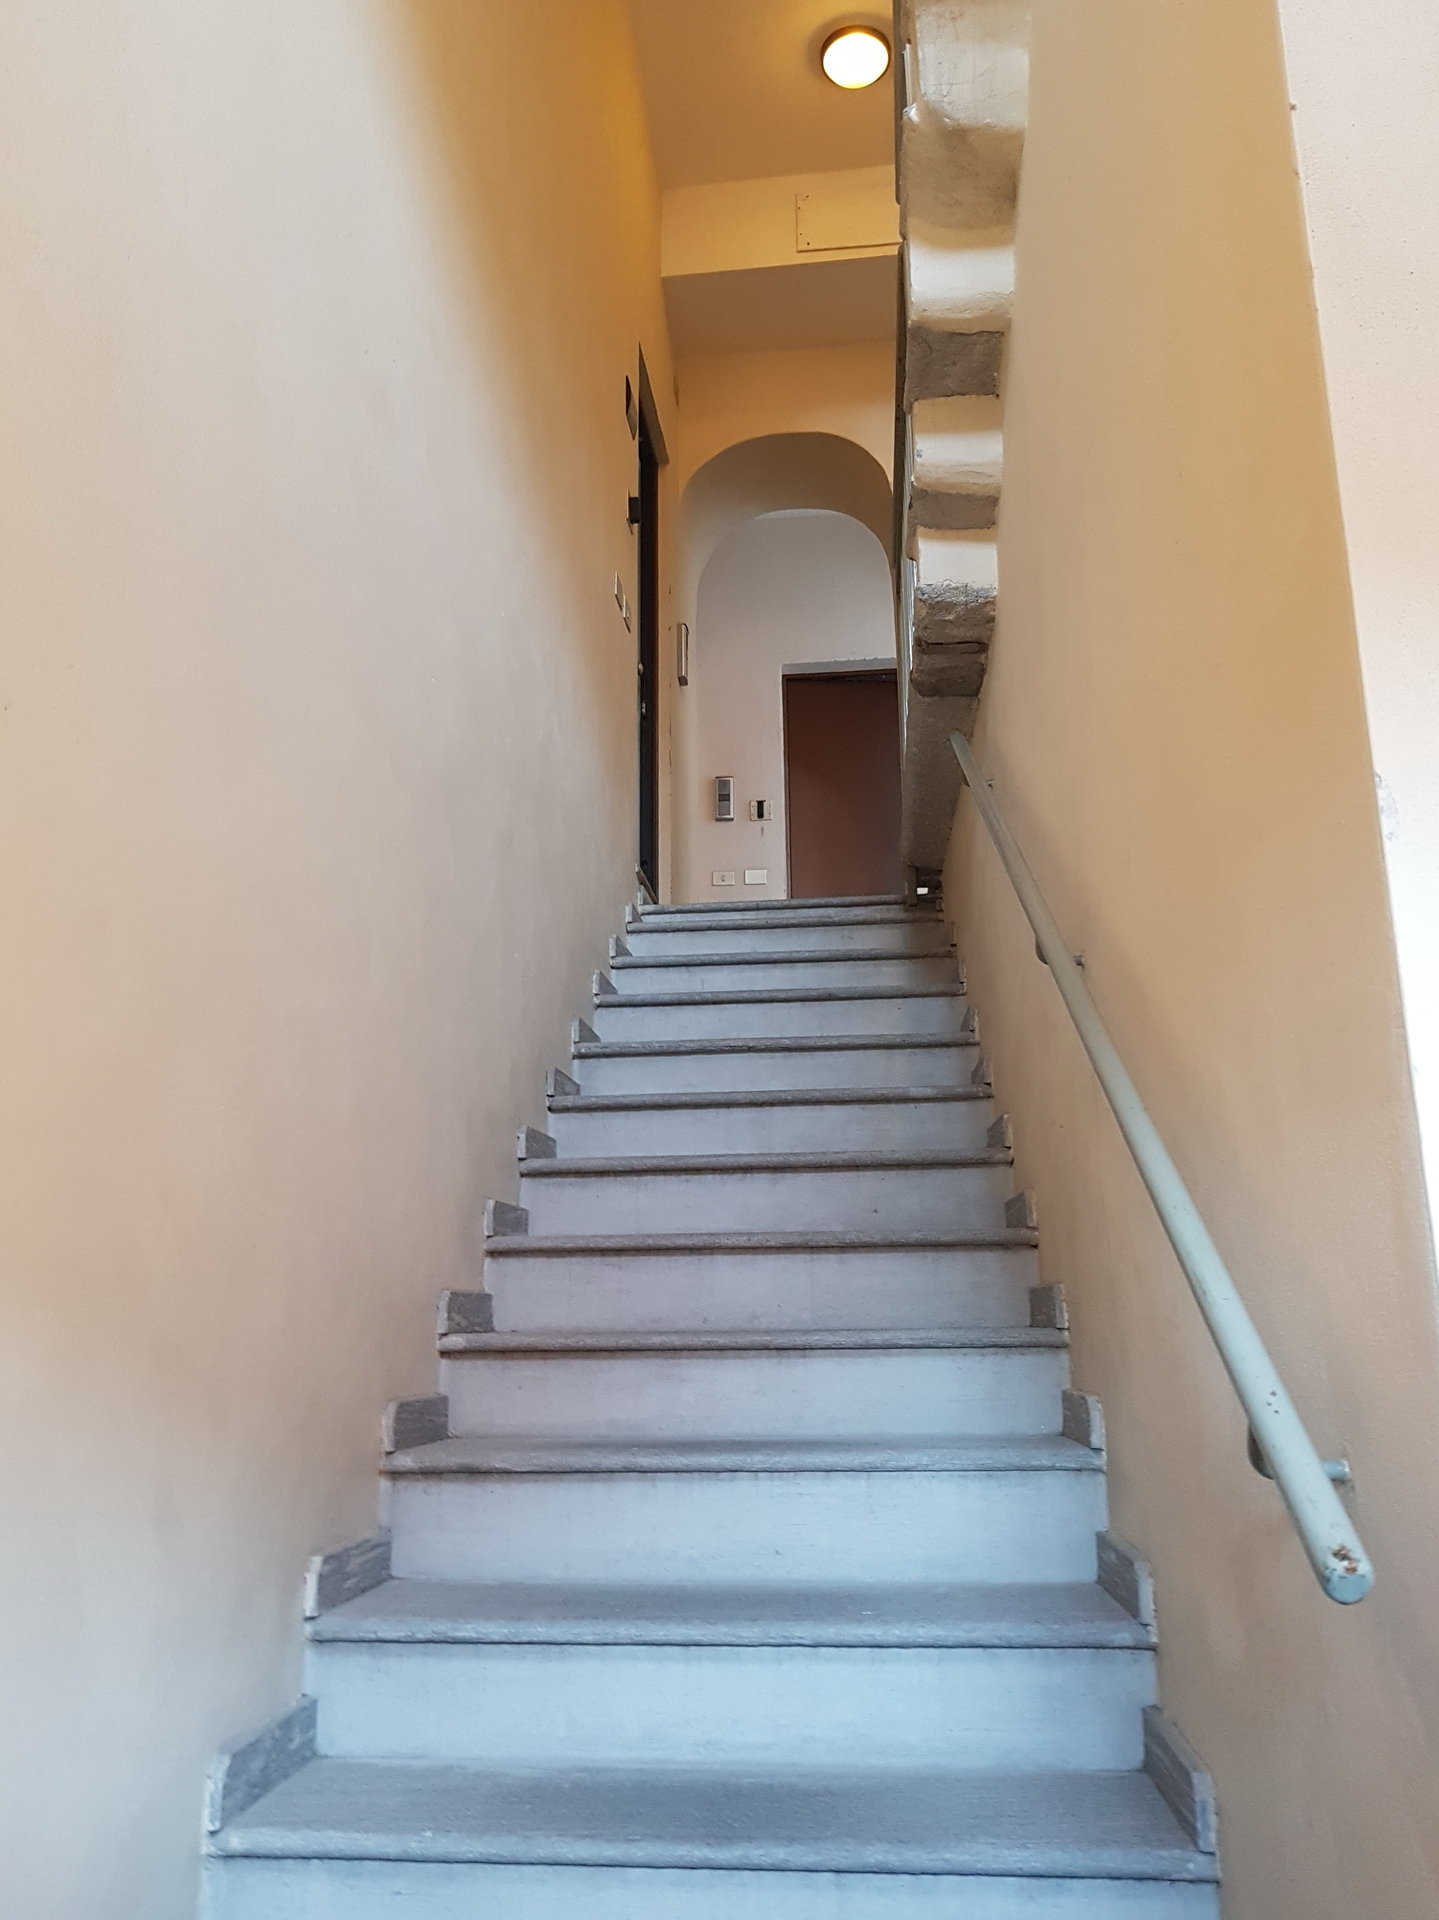 Renovated apartment for sale in Verbania centre - stairs